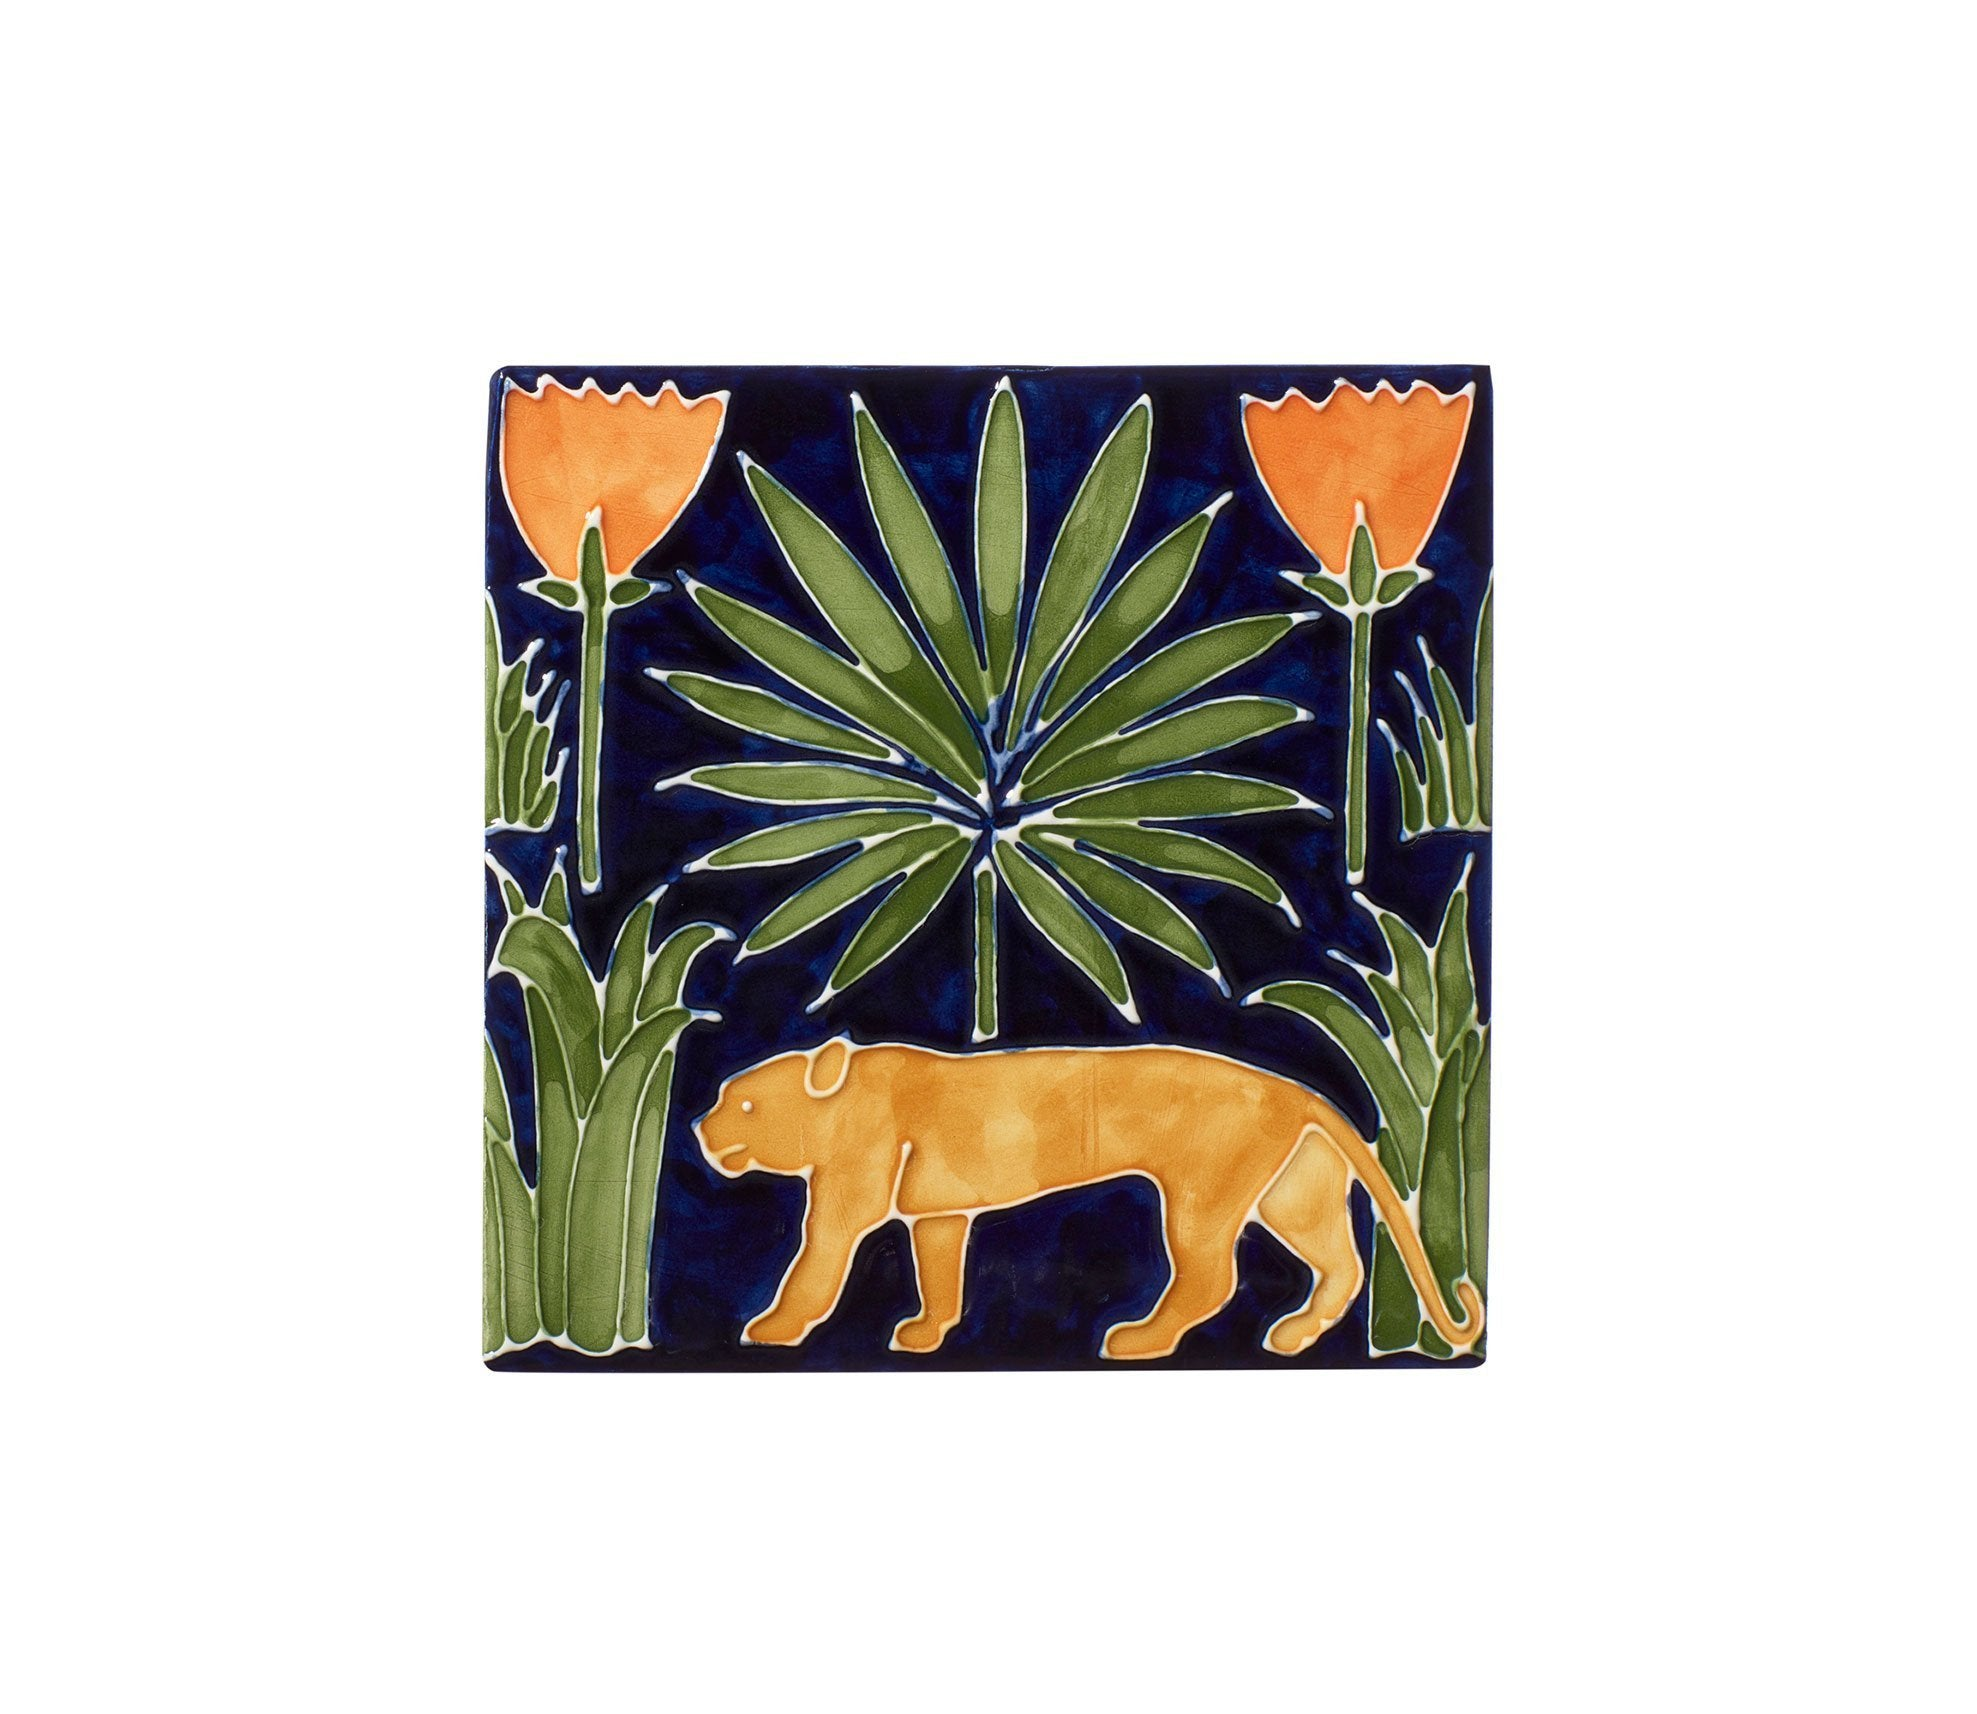 Lioness & Palms Tiles Product Image 4